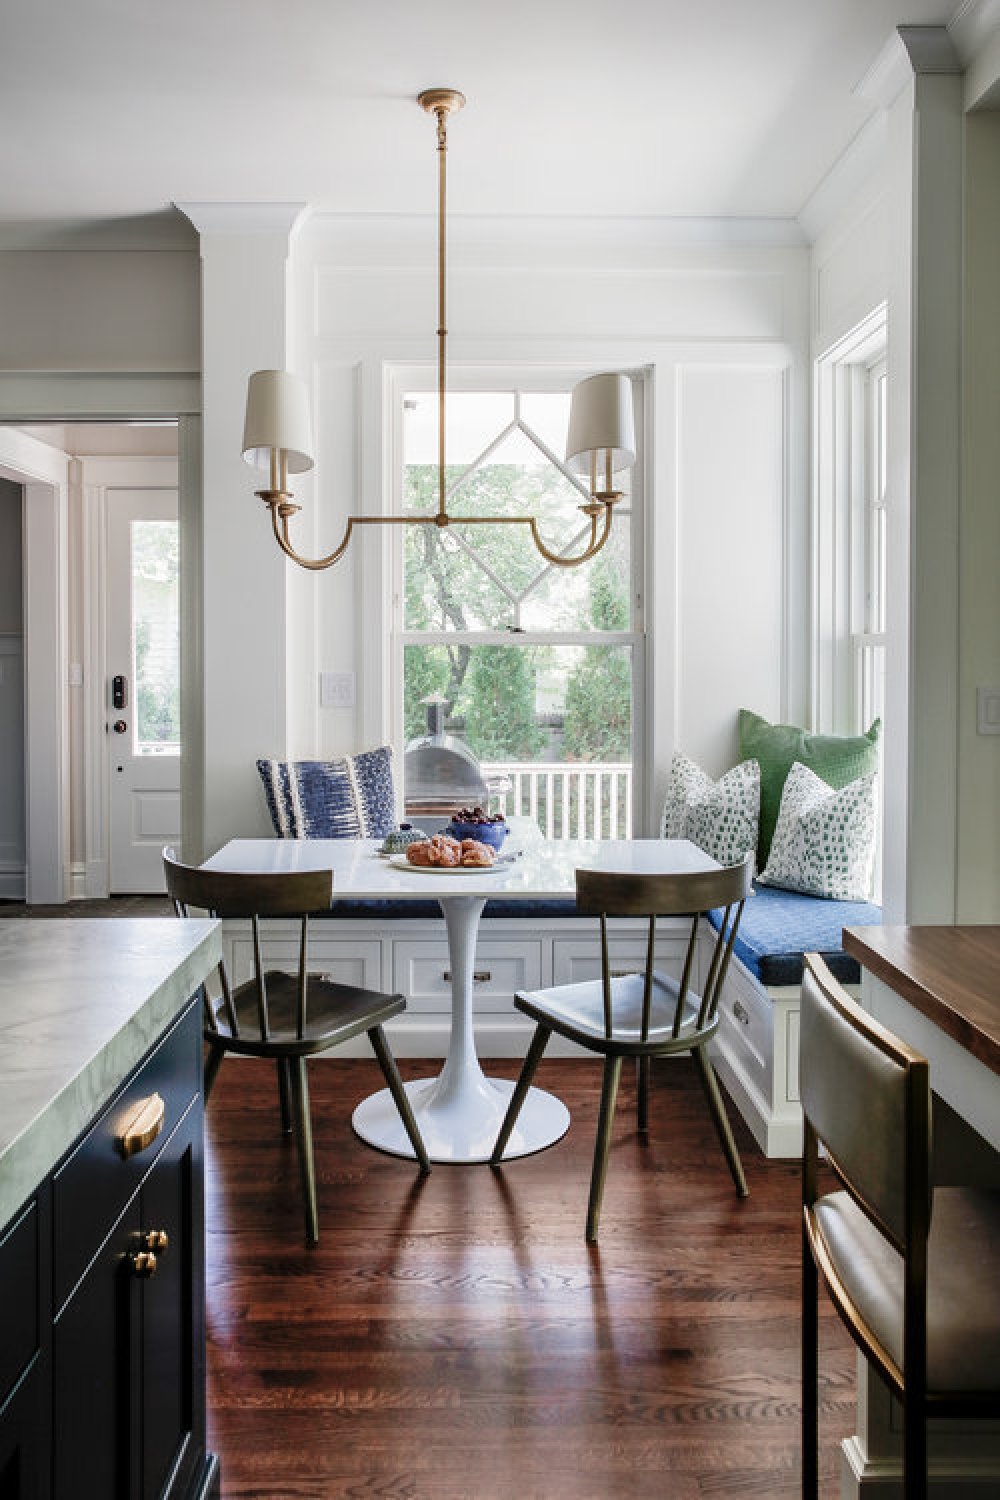 Lovely breakfast nook with built-in window seat and modern Saarinen style table in a blue kitchen by Edward Deegan Architects.